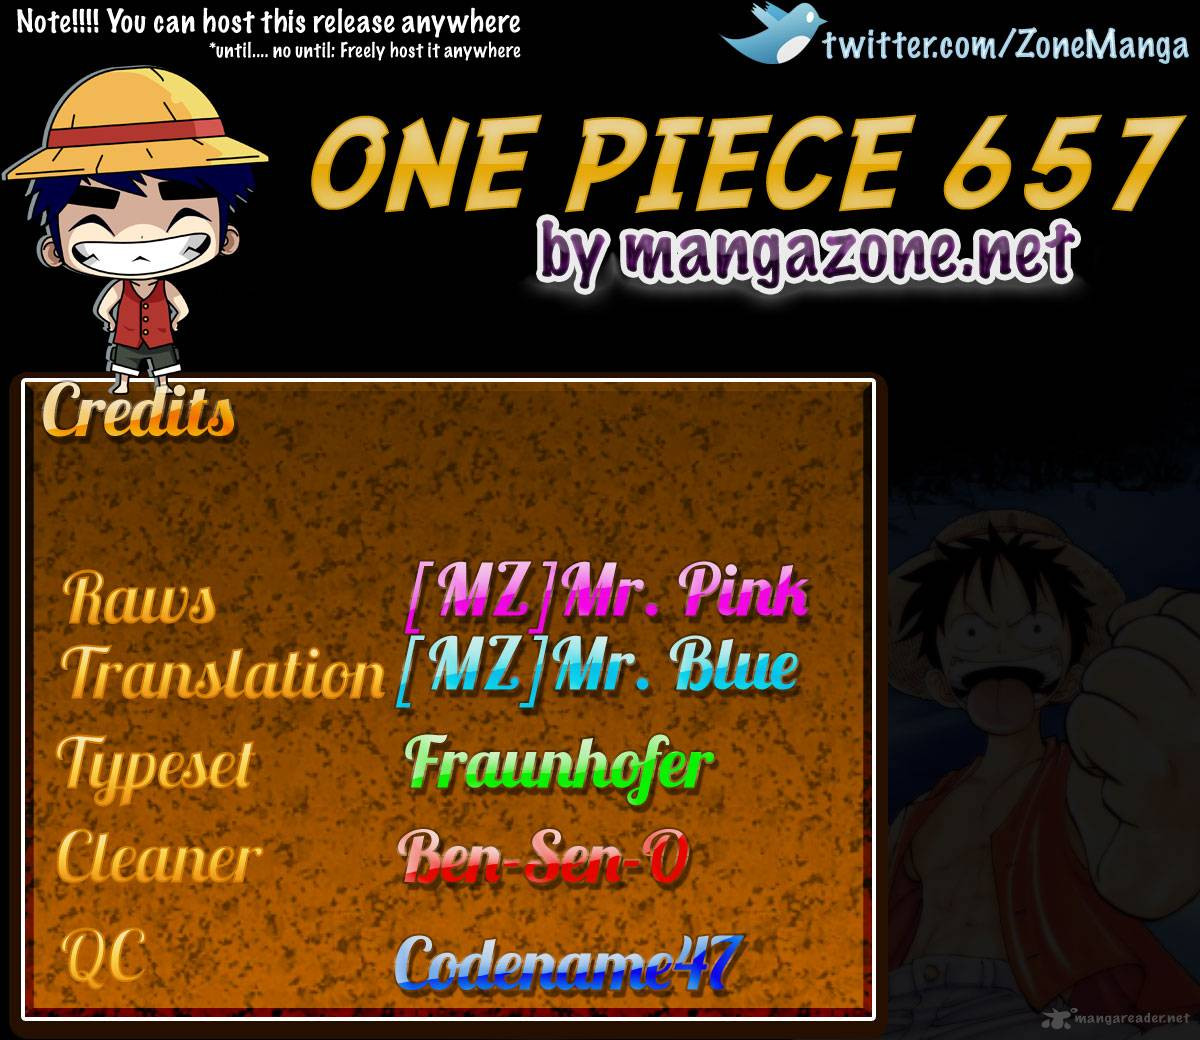 One Piece 657: Disembodied Head